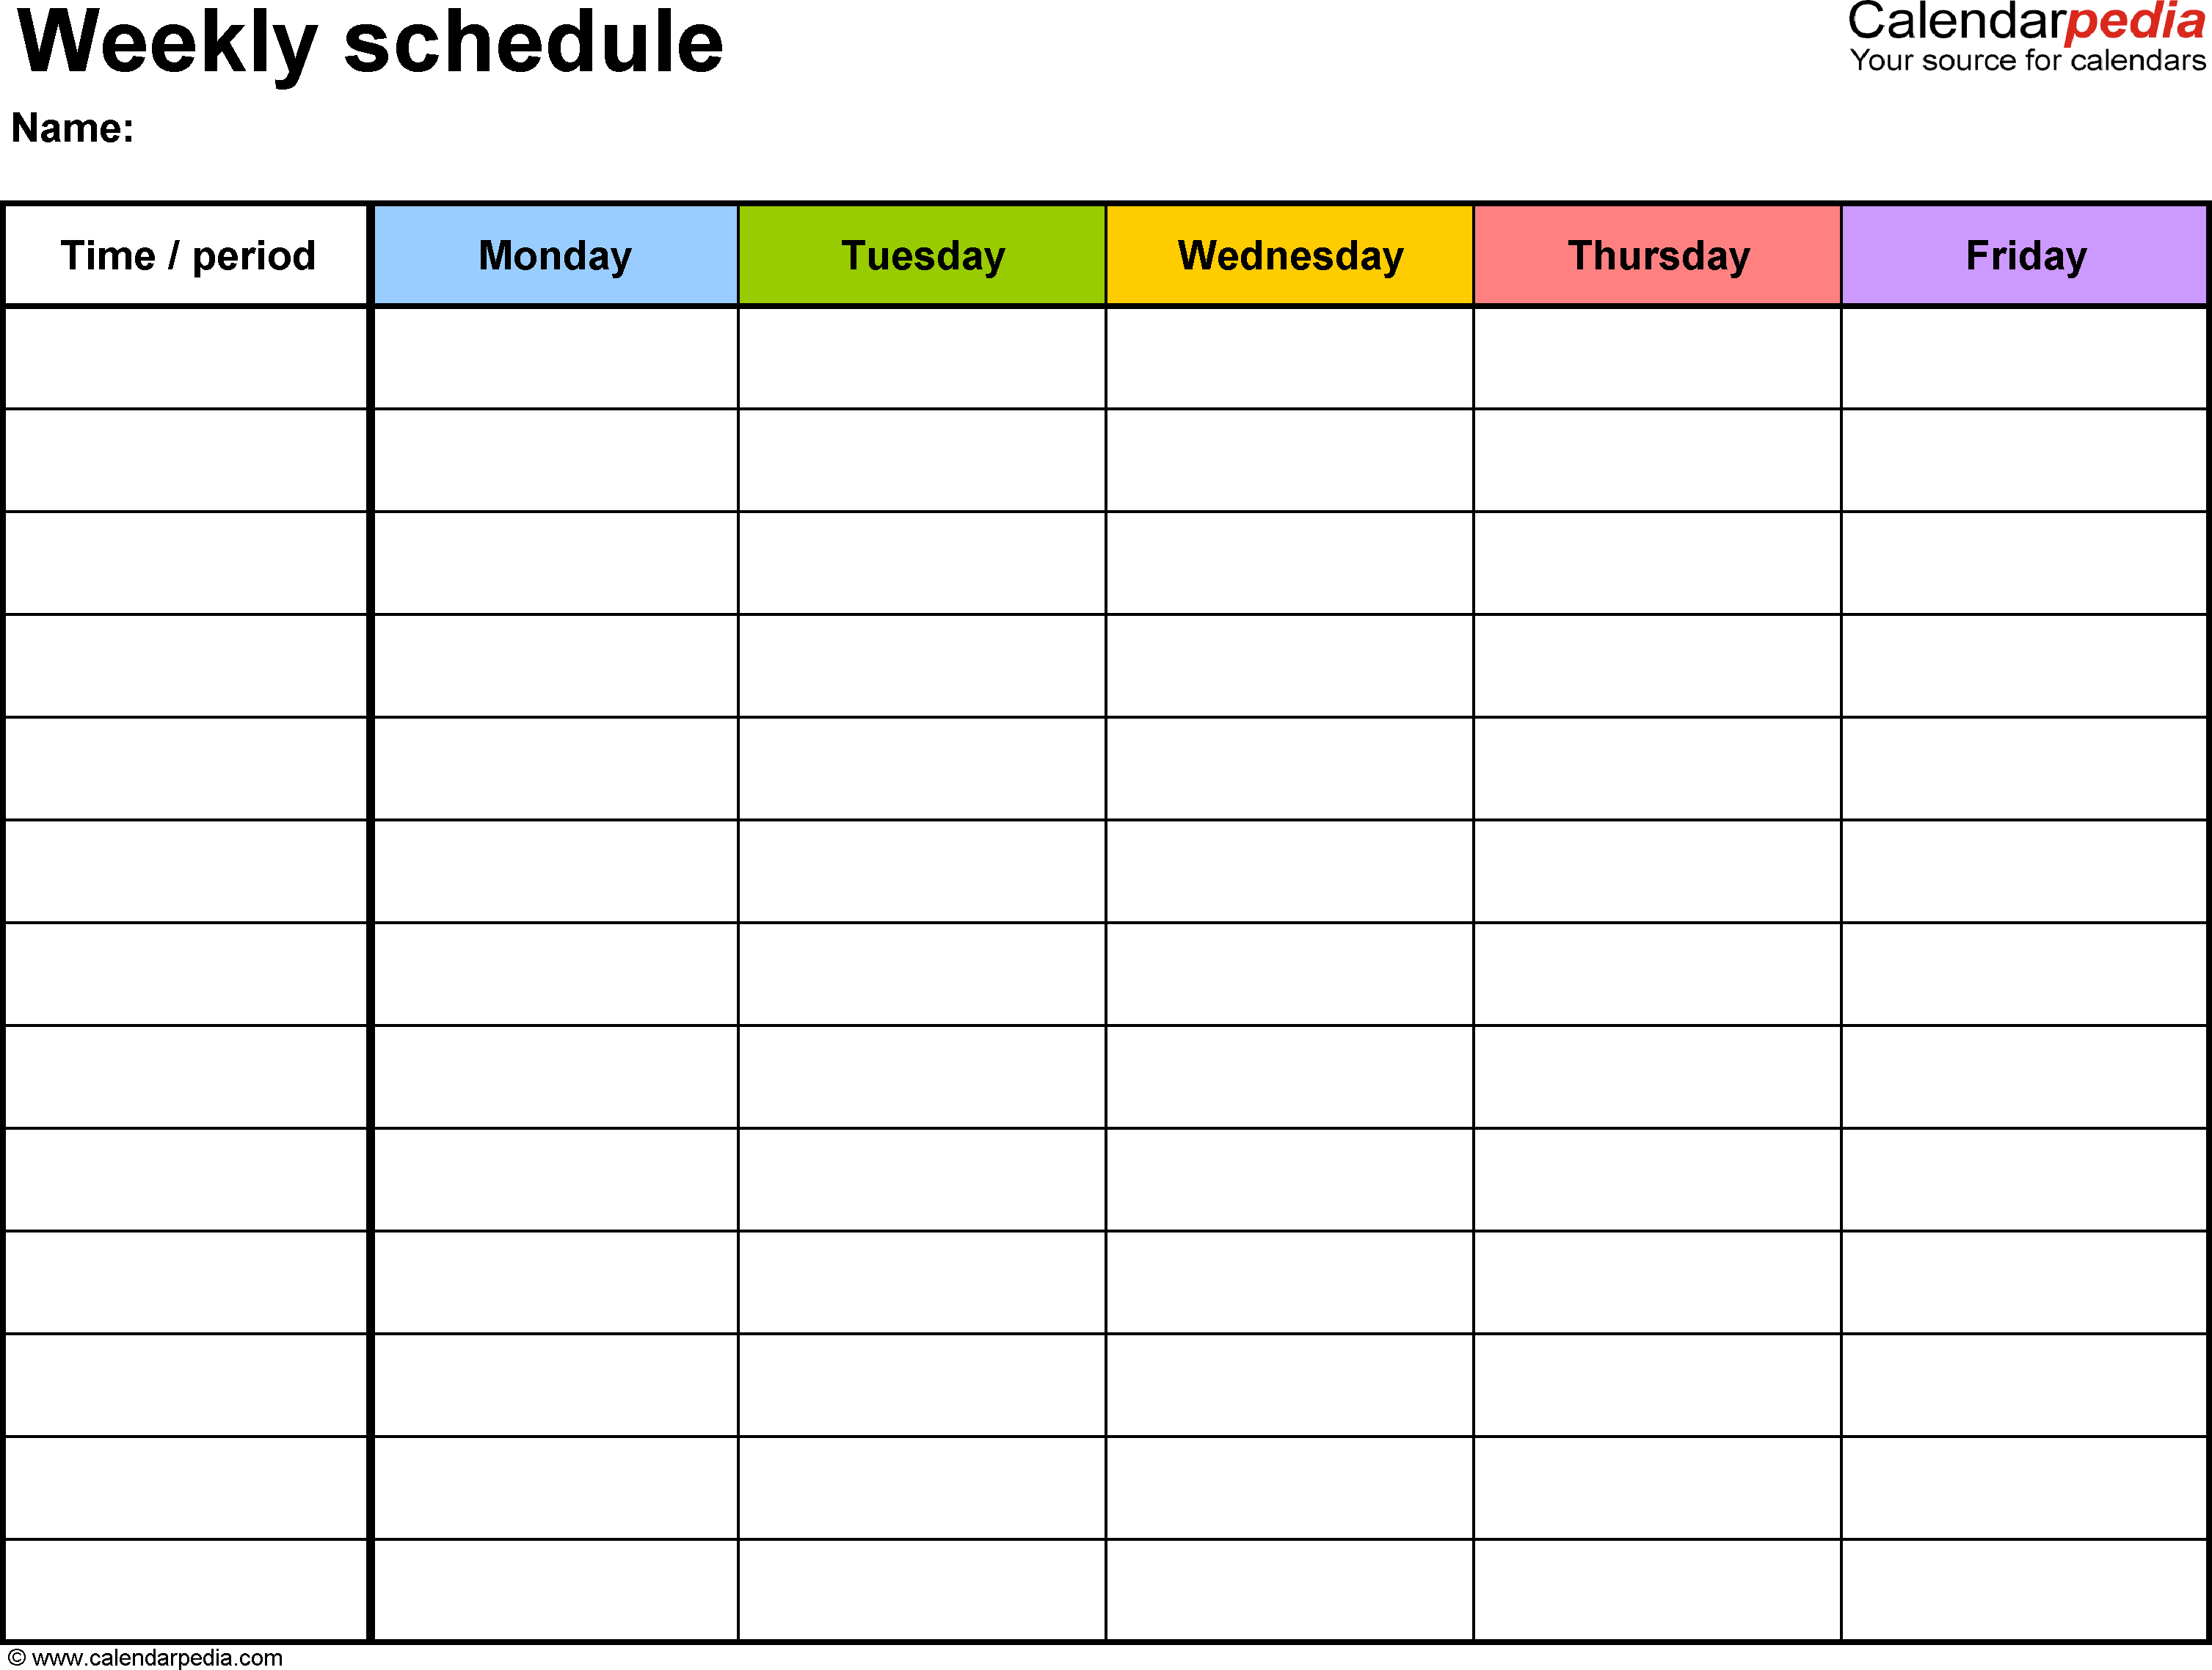 Week Calendar With Times  Bolan.horizonconsulting.co within Free Printable Weekly Planner With Time Slots